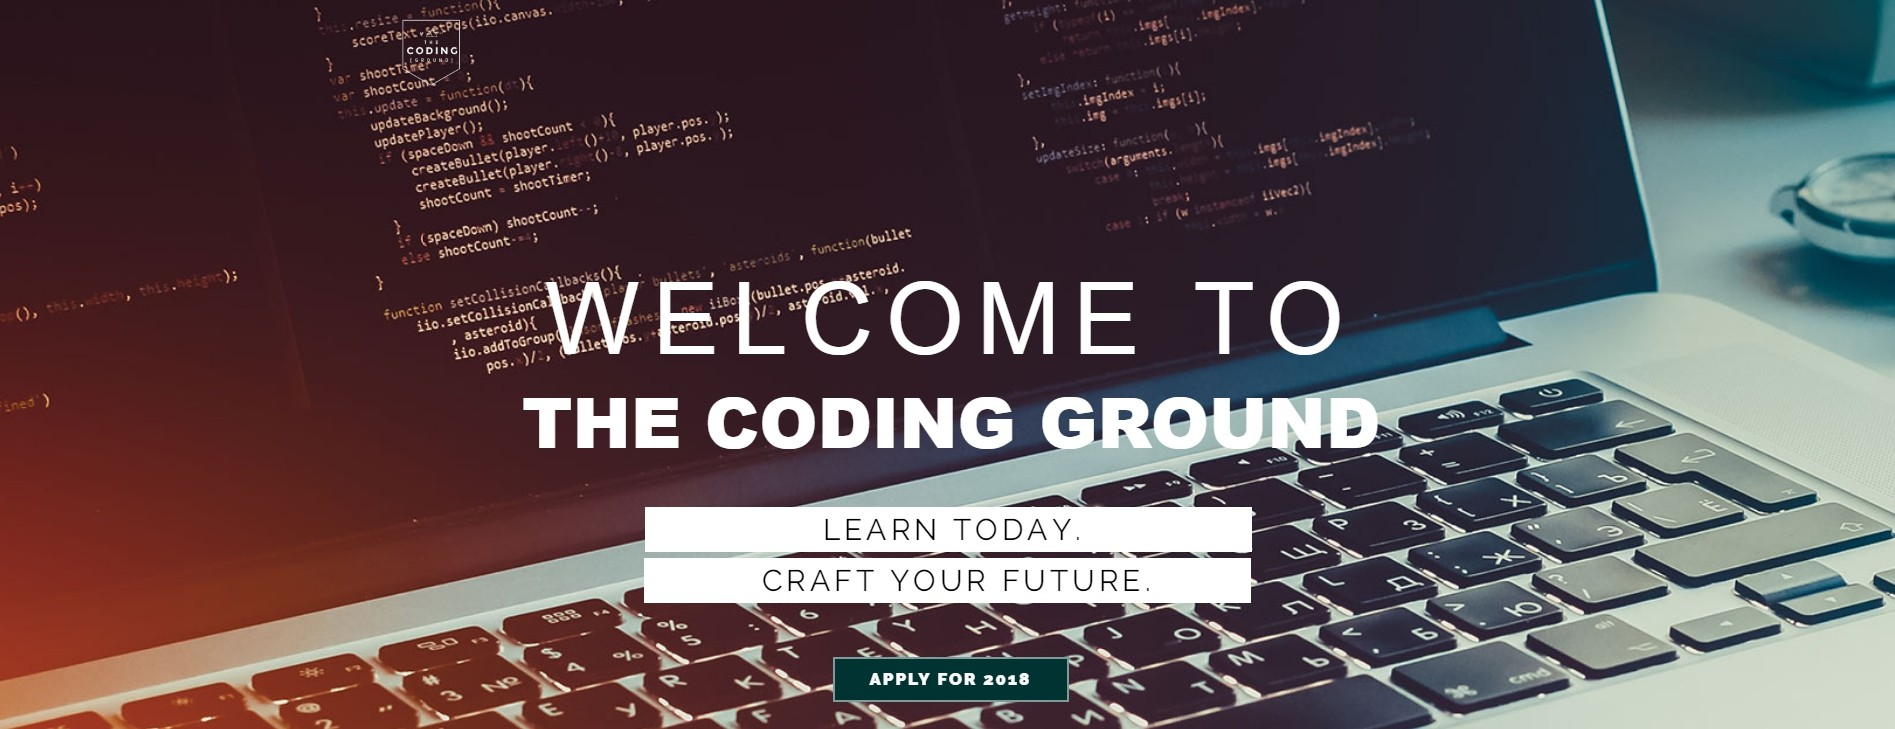 The Coding Ground Learn Today. Craft the Future.